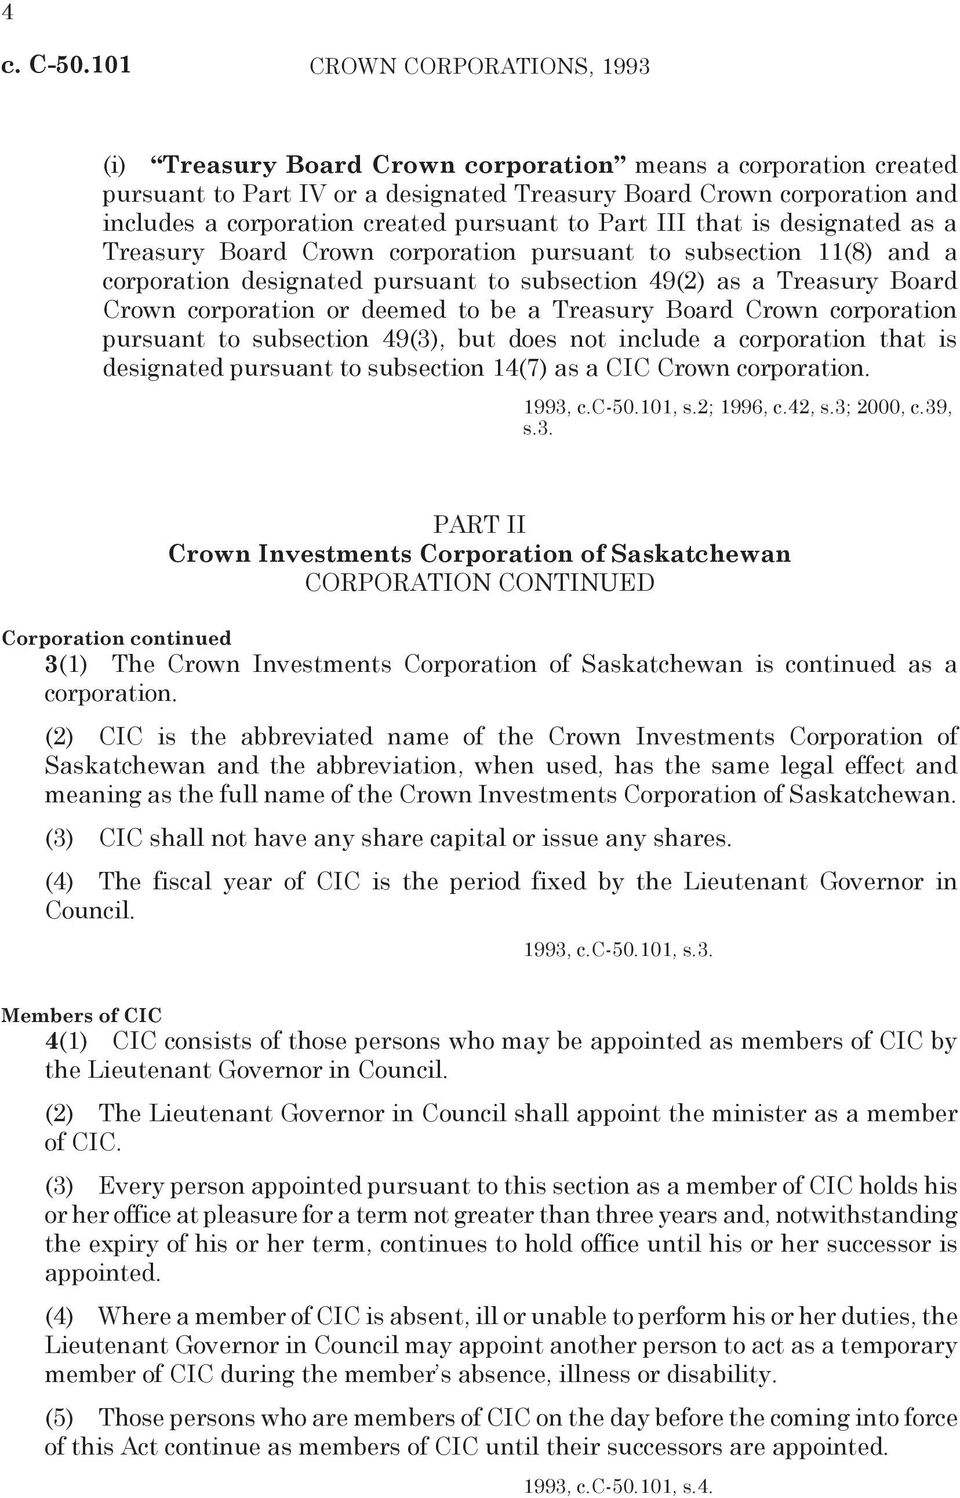 Treasury Board Crown corporation pursuant to subsection 49(3), but does not include a corporation that is designated pursuant to subsection 14(7) as a CIC Crown corporation. 1993, c.c-50.101, s.